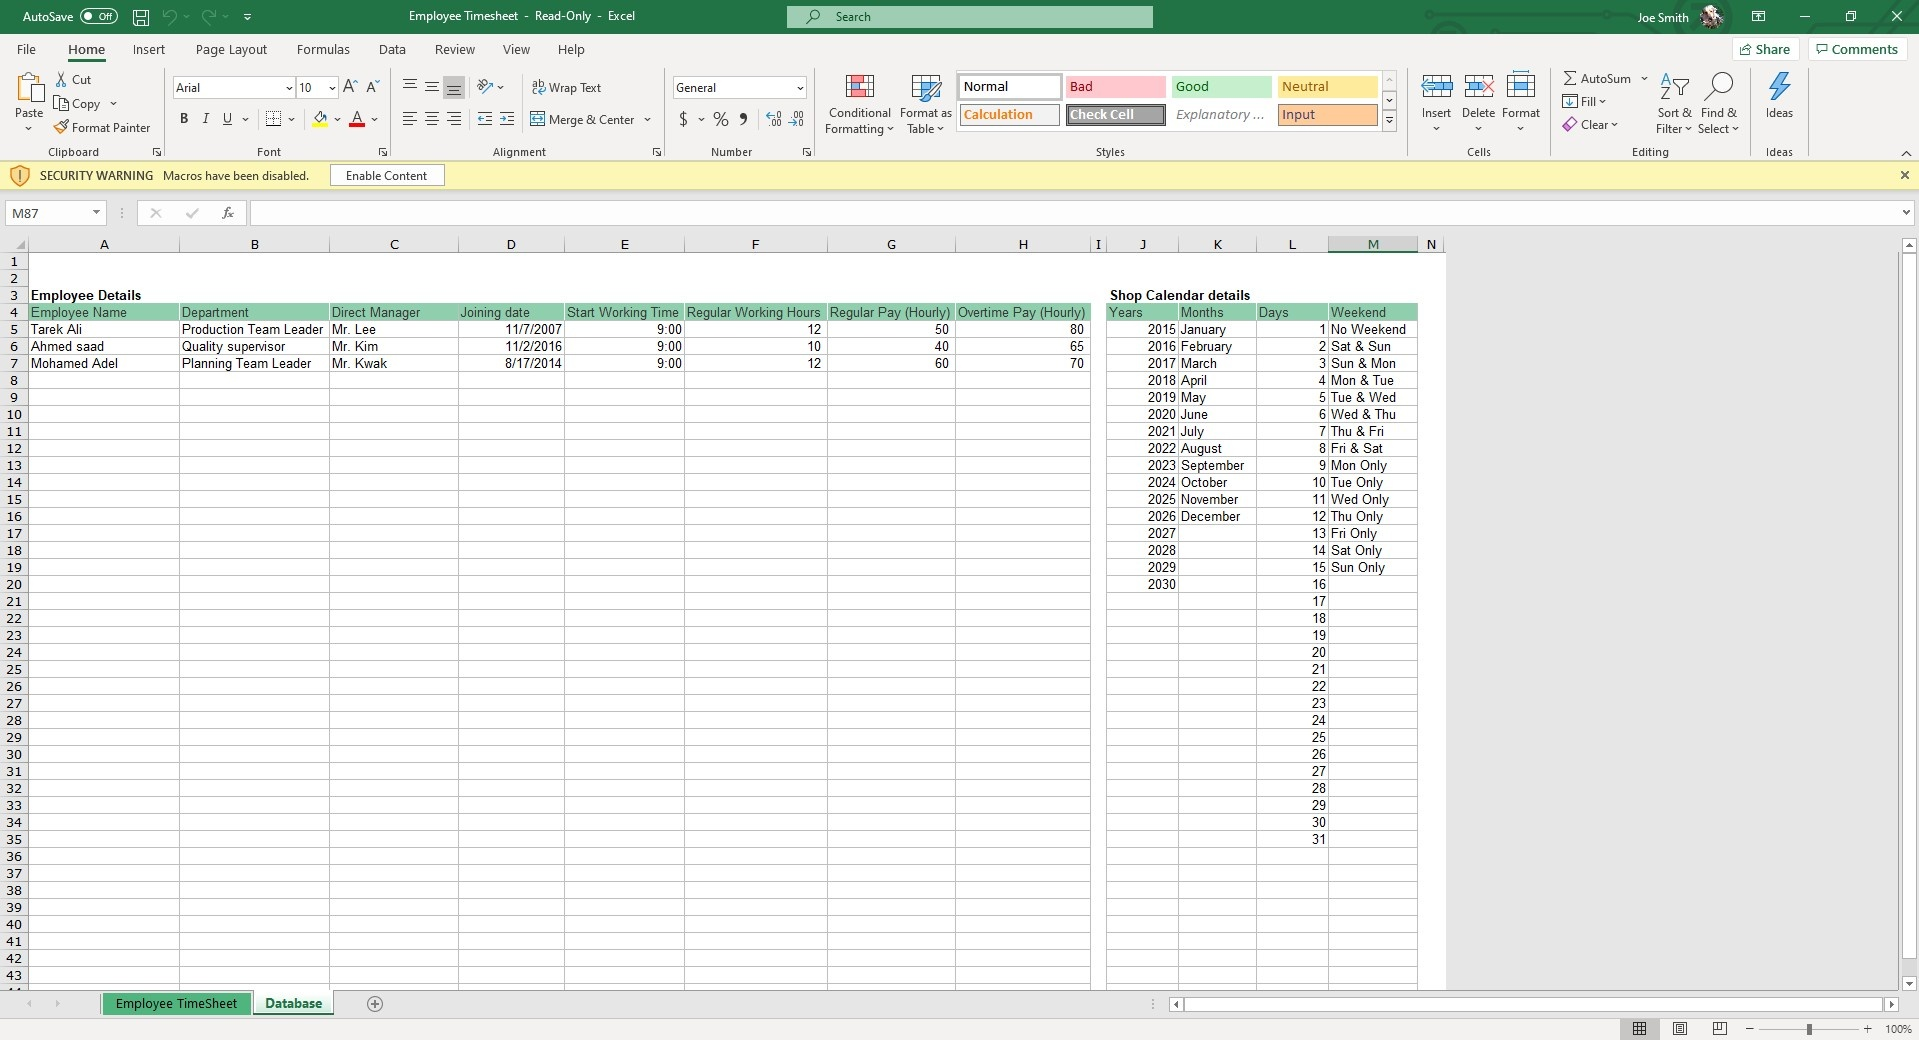 Input Employee Details in the Database sheet that auto populate in the Employee Timesheet.